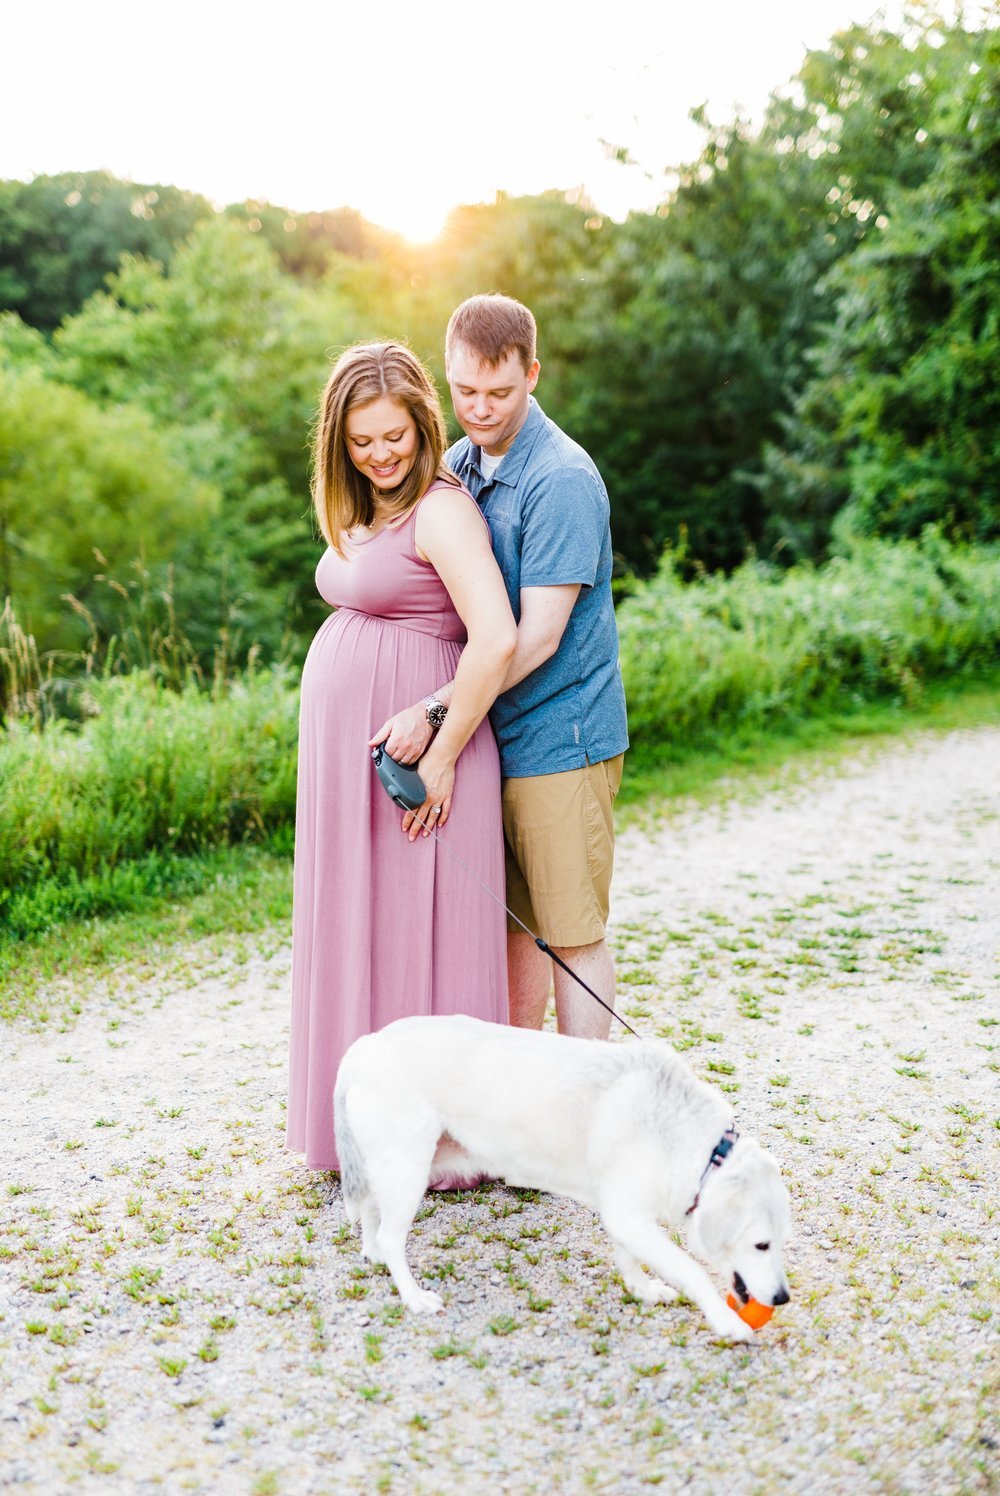 Alexandria Fairfax Mercer Lake Maternity Photographer 9.jpg